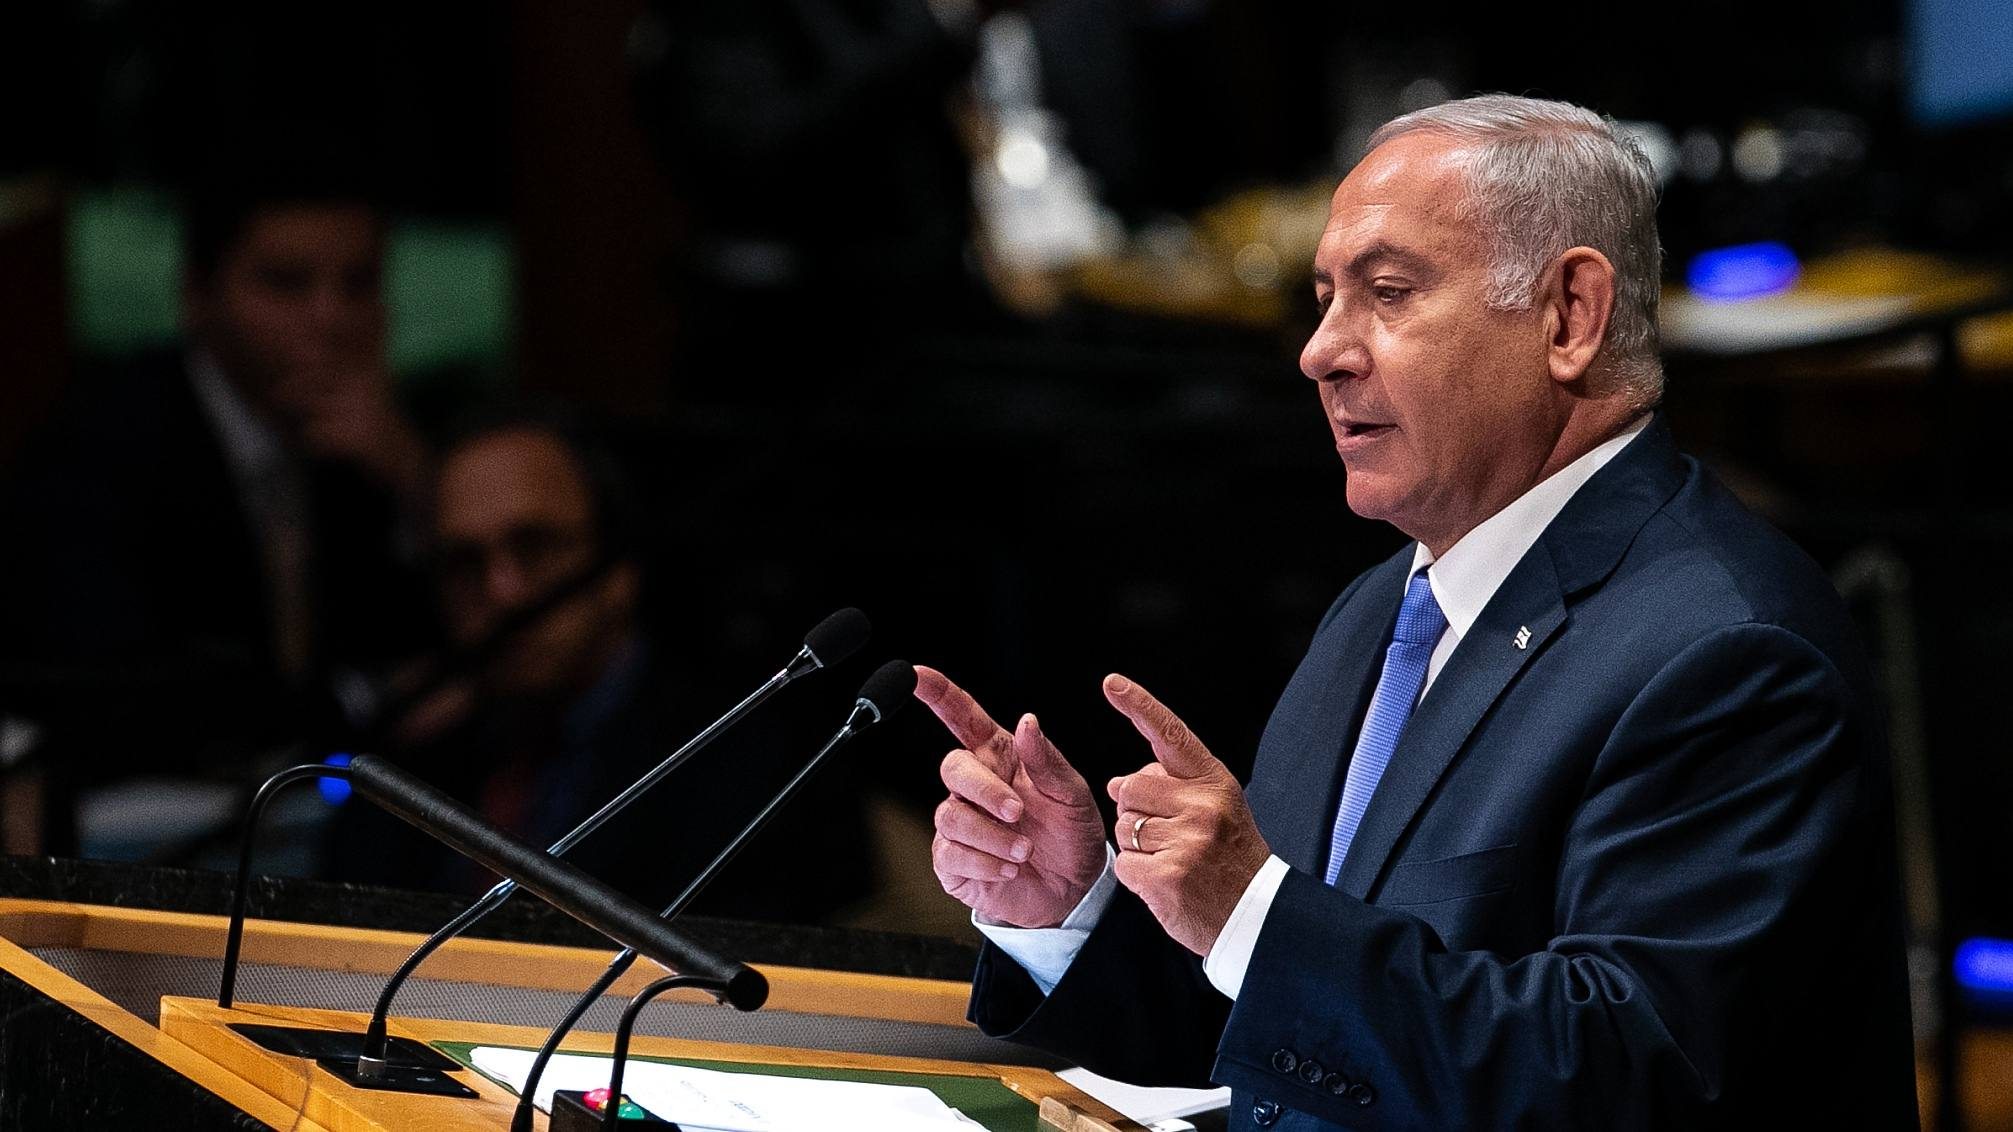 Netanyahu tests negative for coronavirus after his aide's infection